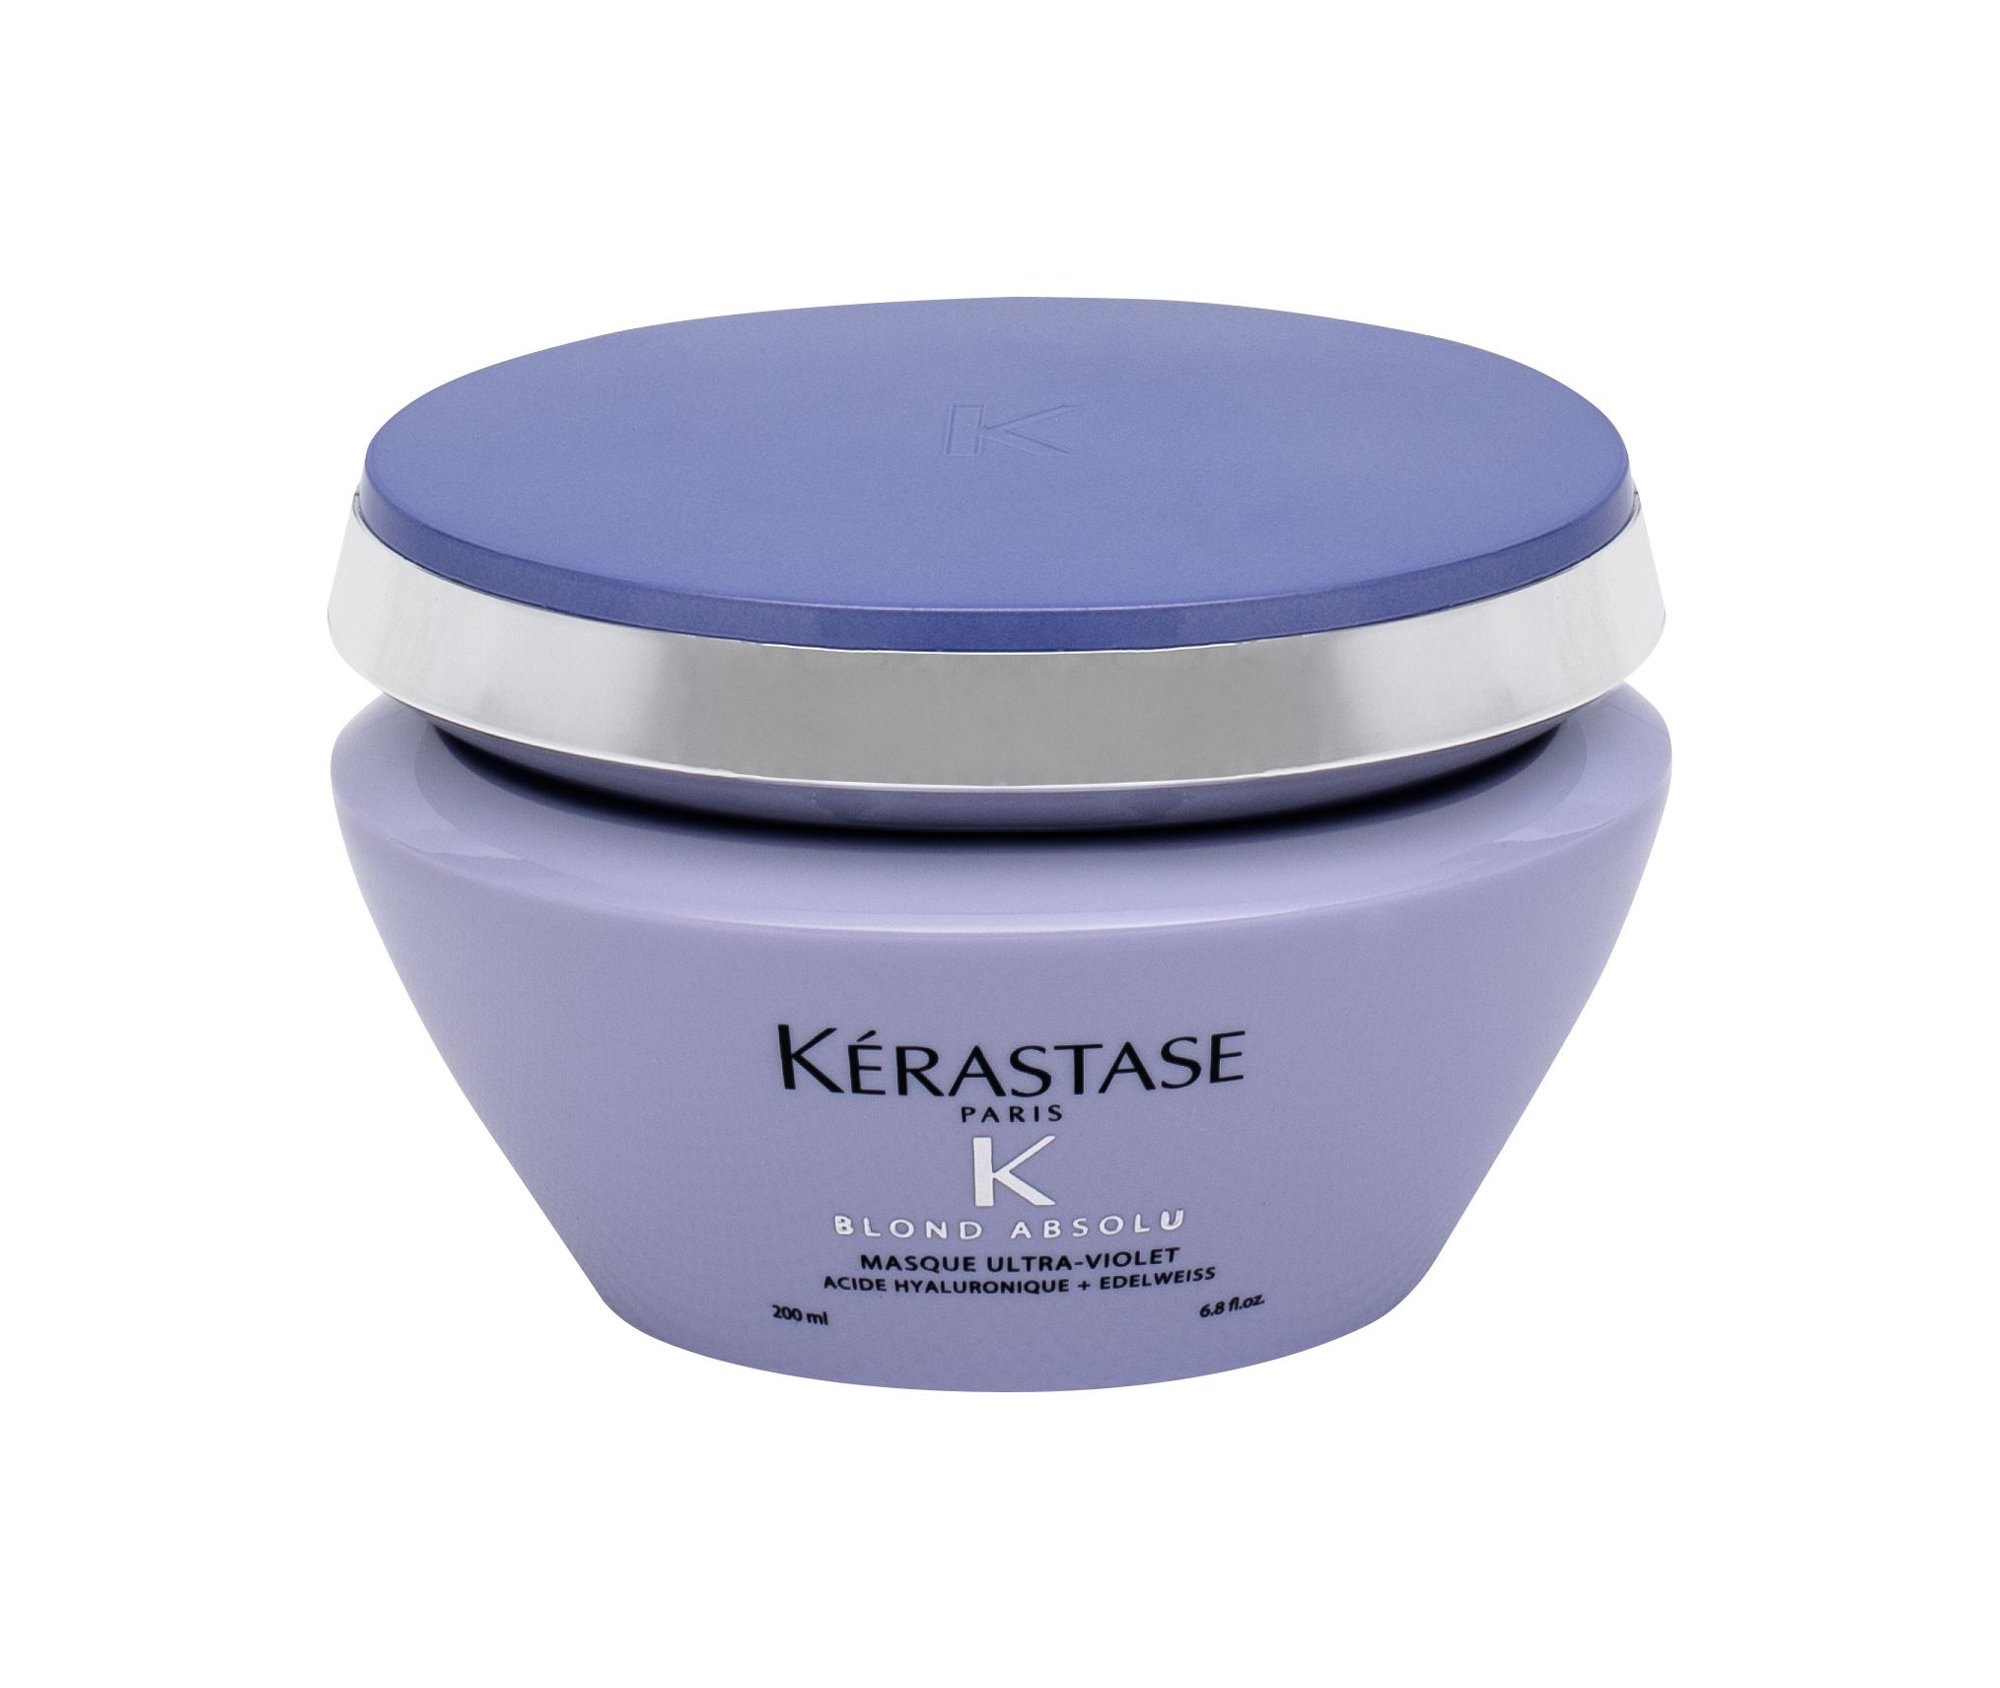 Kérastase Blond Absolu Hair Mask 200ml